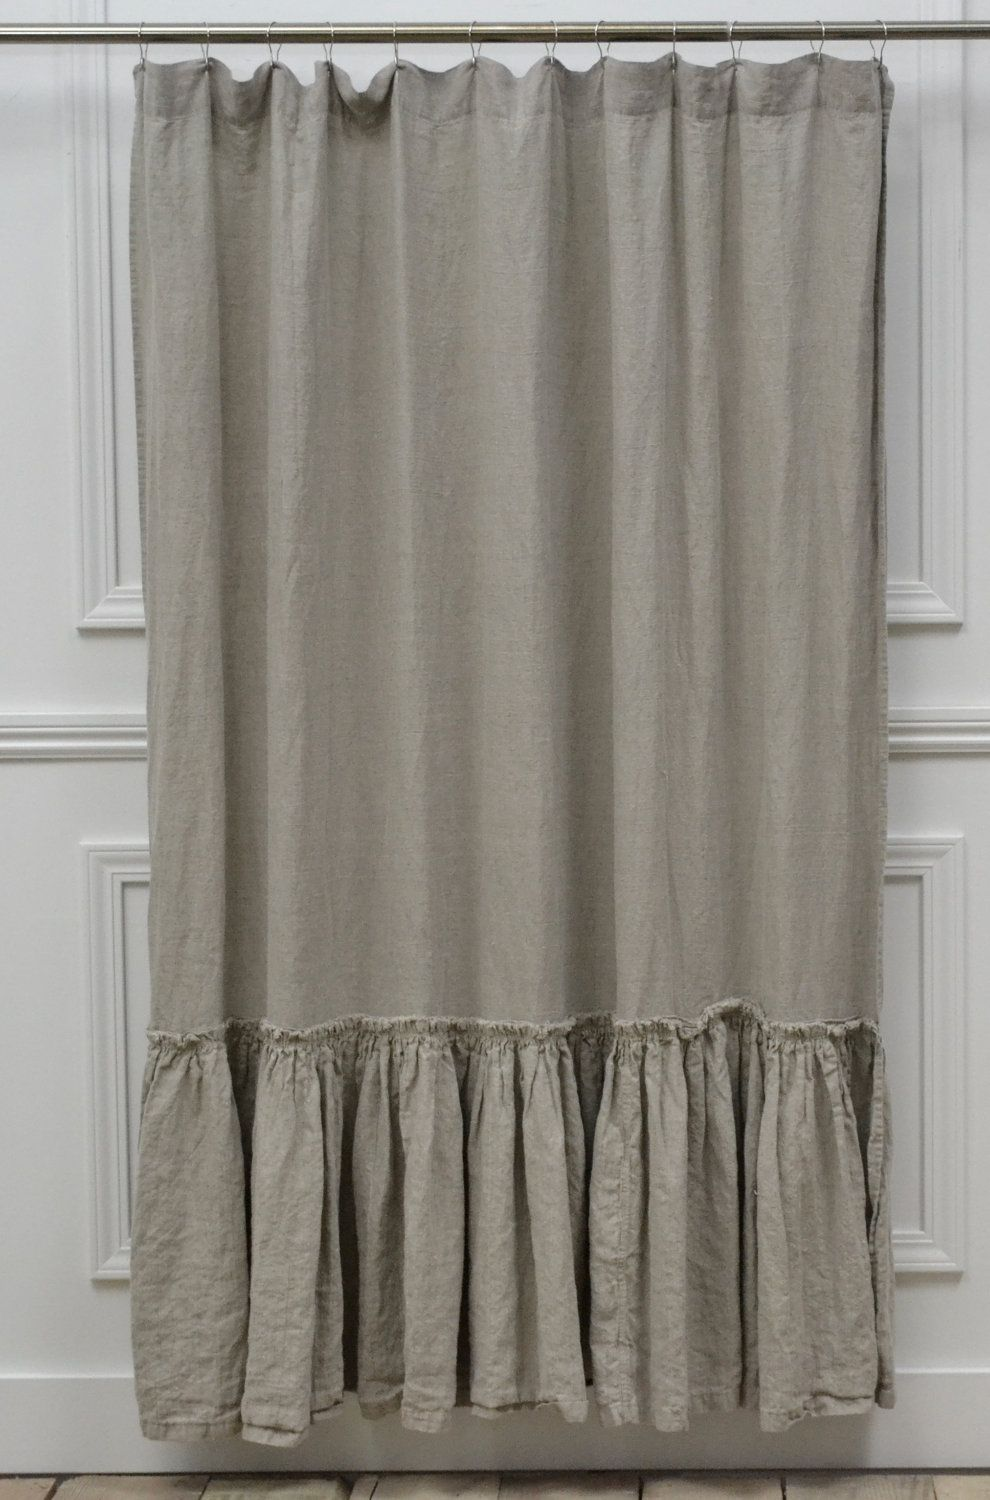 Vintage Ruffle Shower Curtain 72 W X 76 L 195 00 Via Etsy